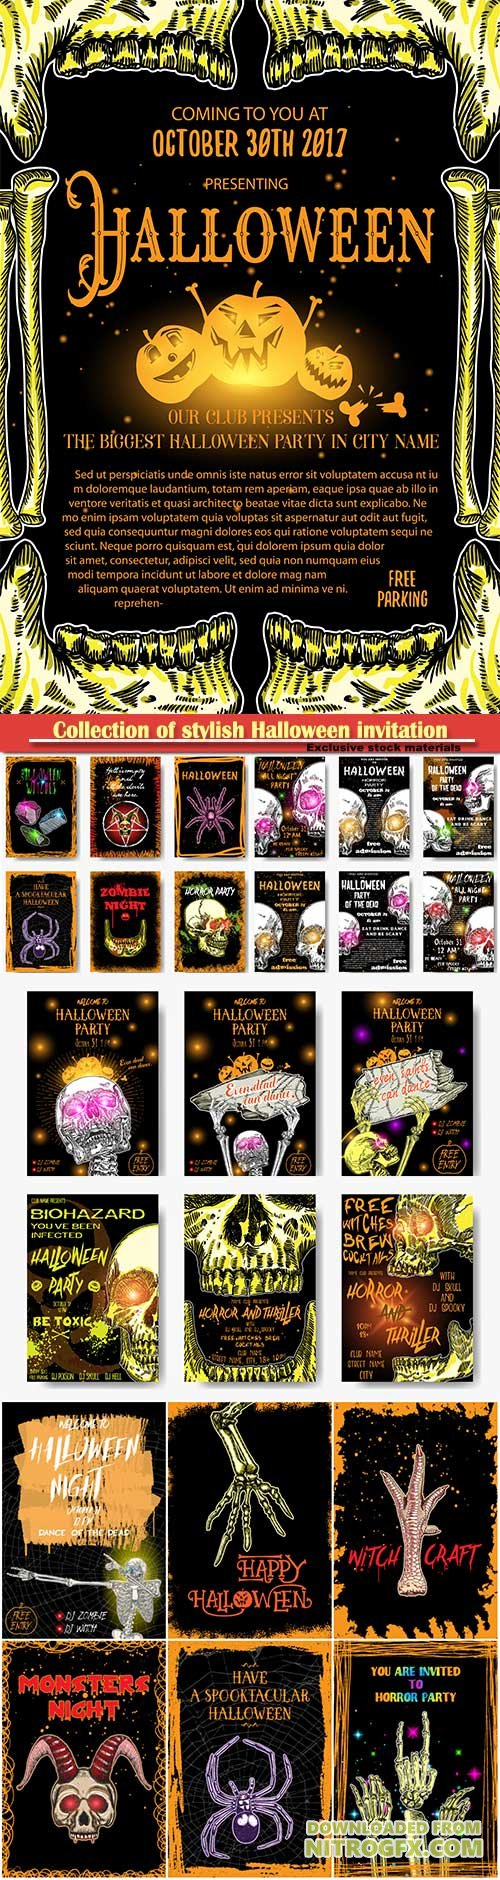 Collection of stylish Halloween invitation posters and cards, hand drawn Halloween greeting flayers templates